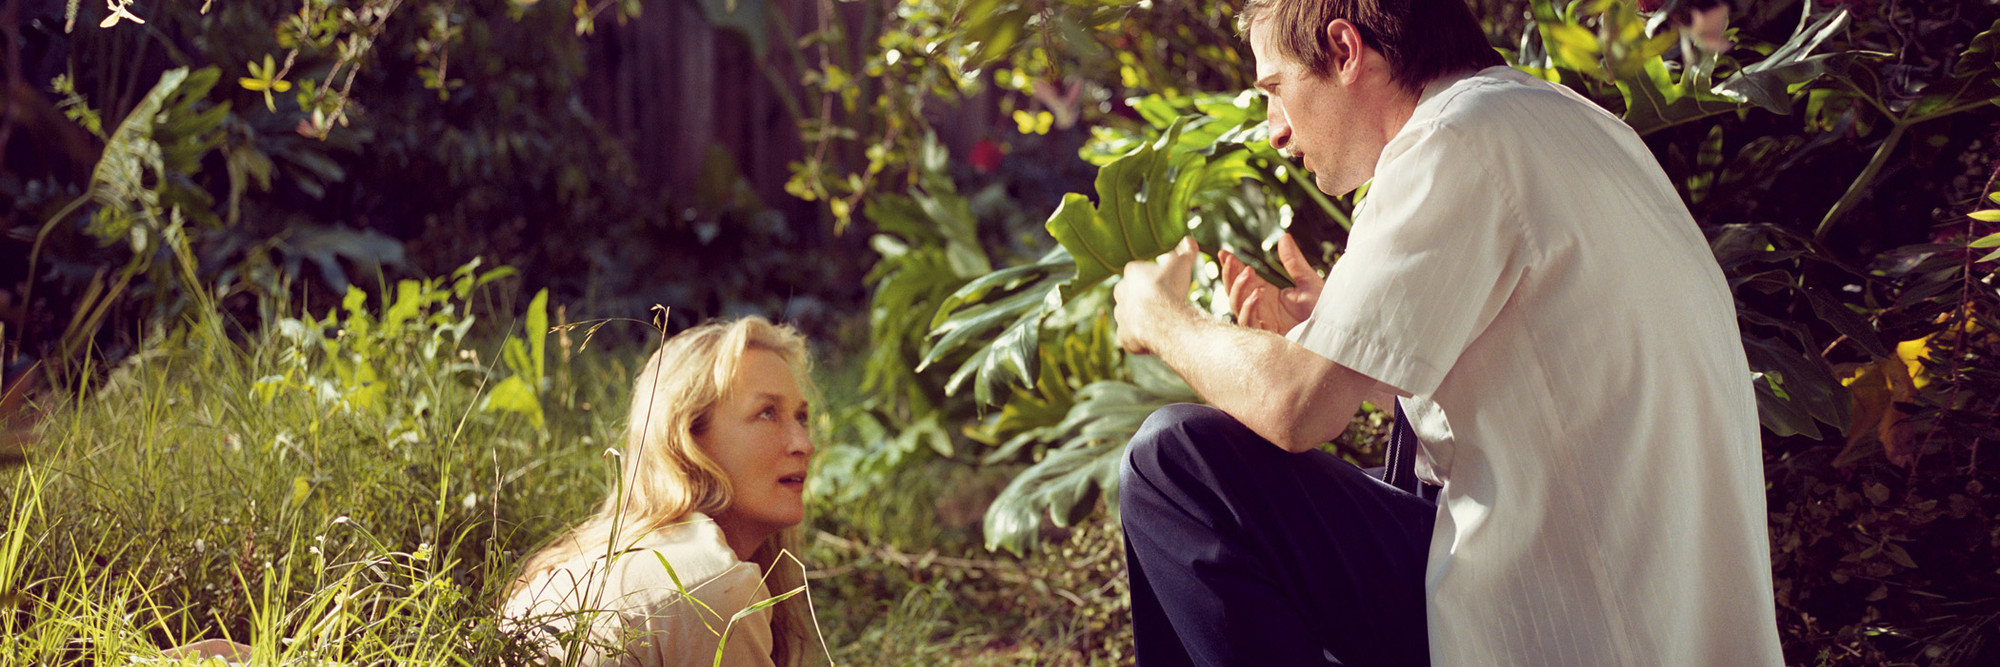 Spike Jonze and Meryl Streep on the set of Adaptation. 2002. USA. Directed by Spike Jonze. © Brigitte Lacombe